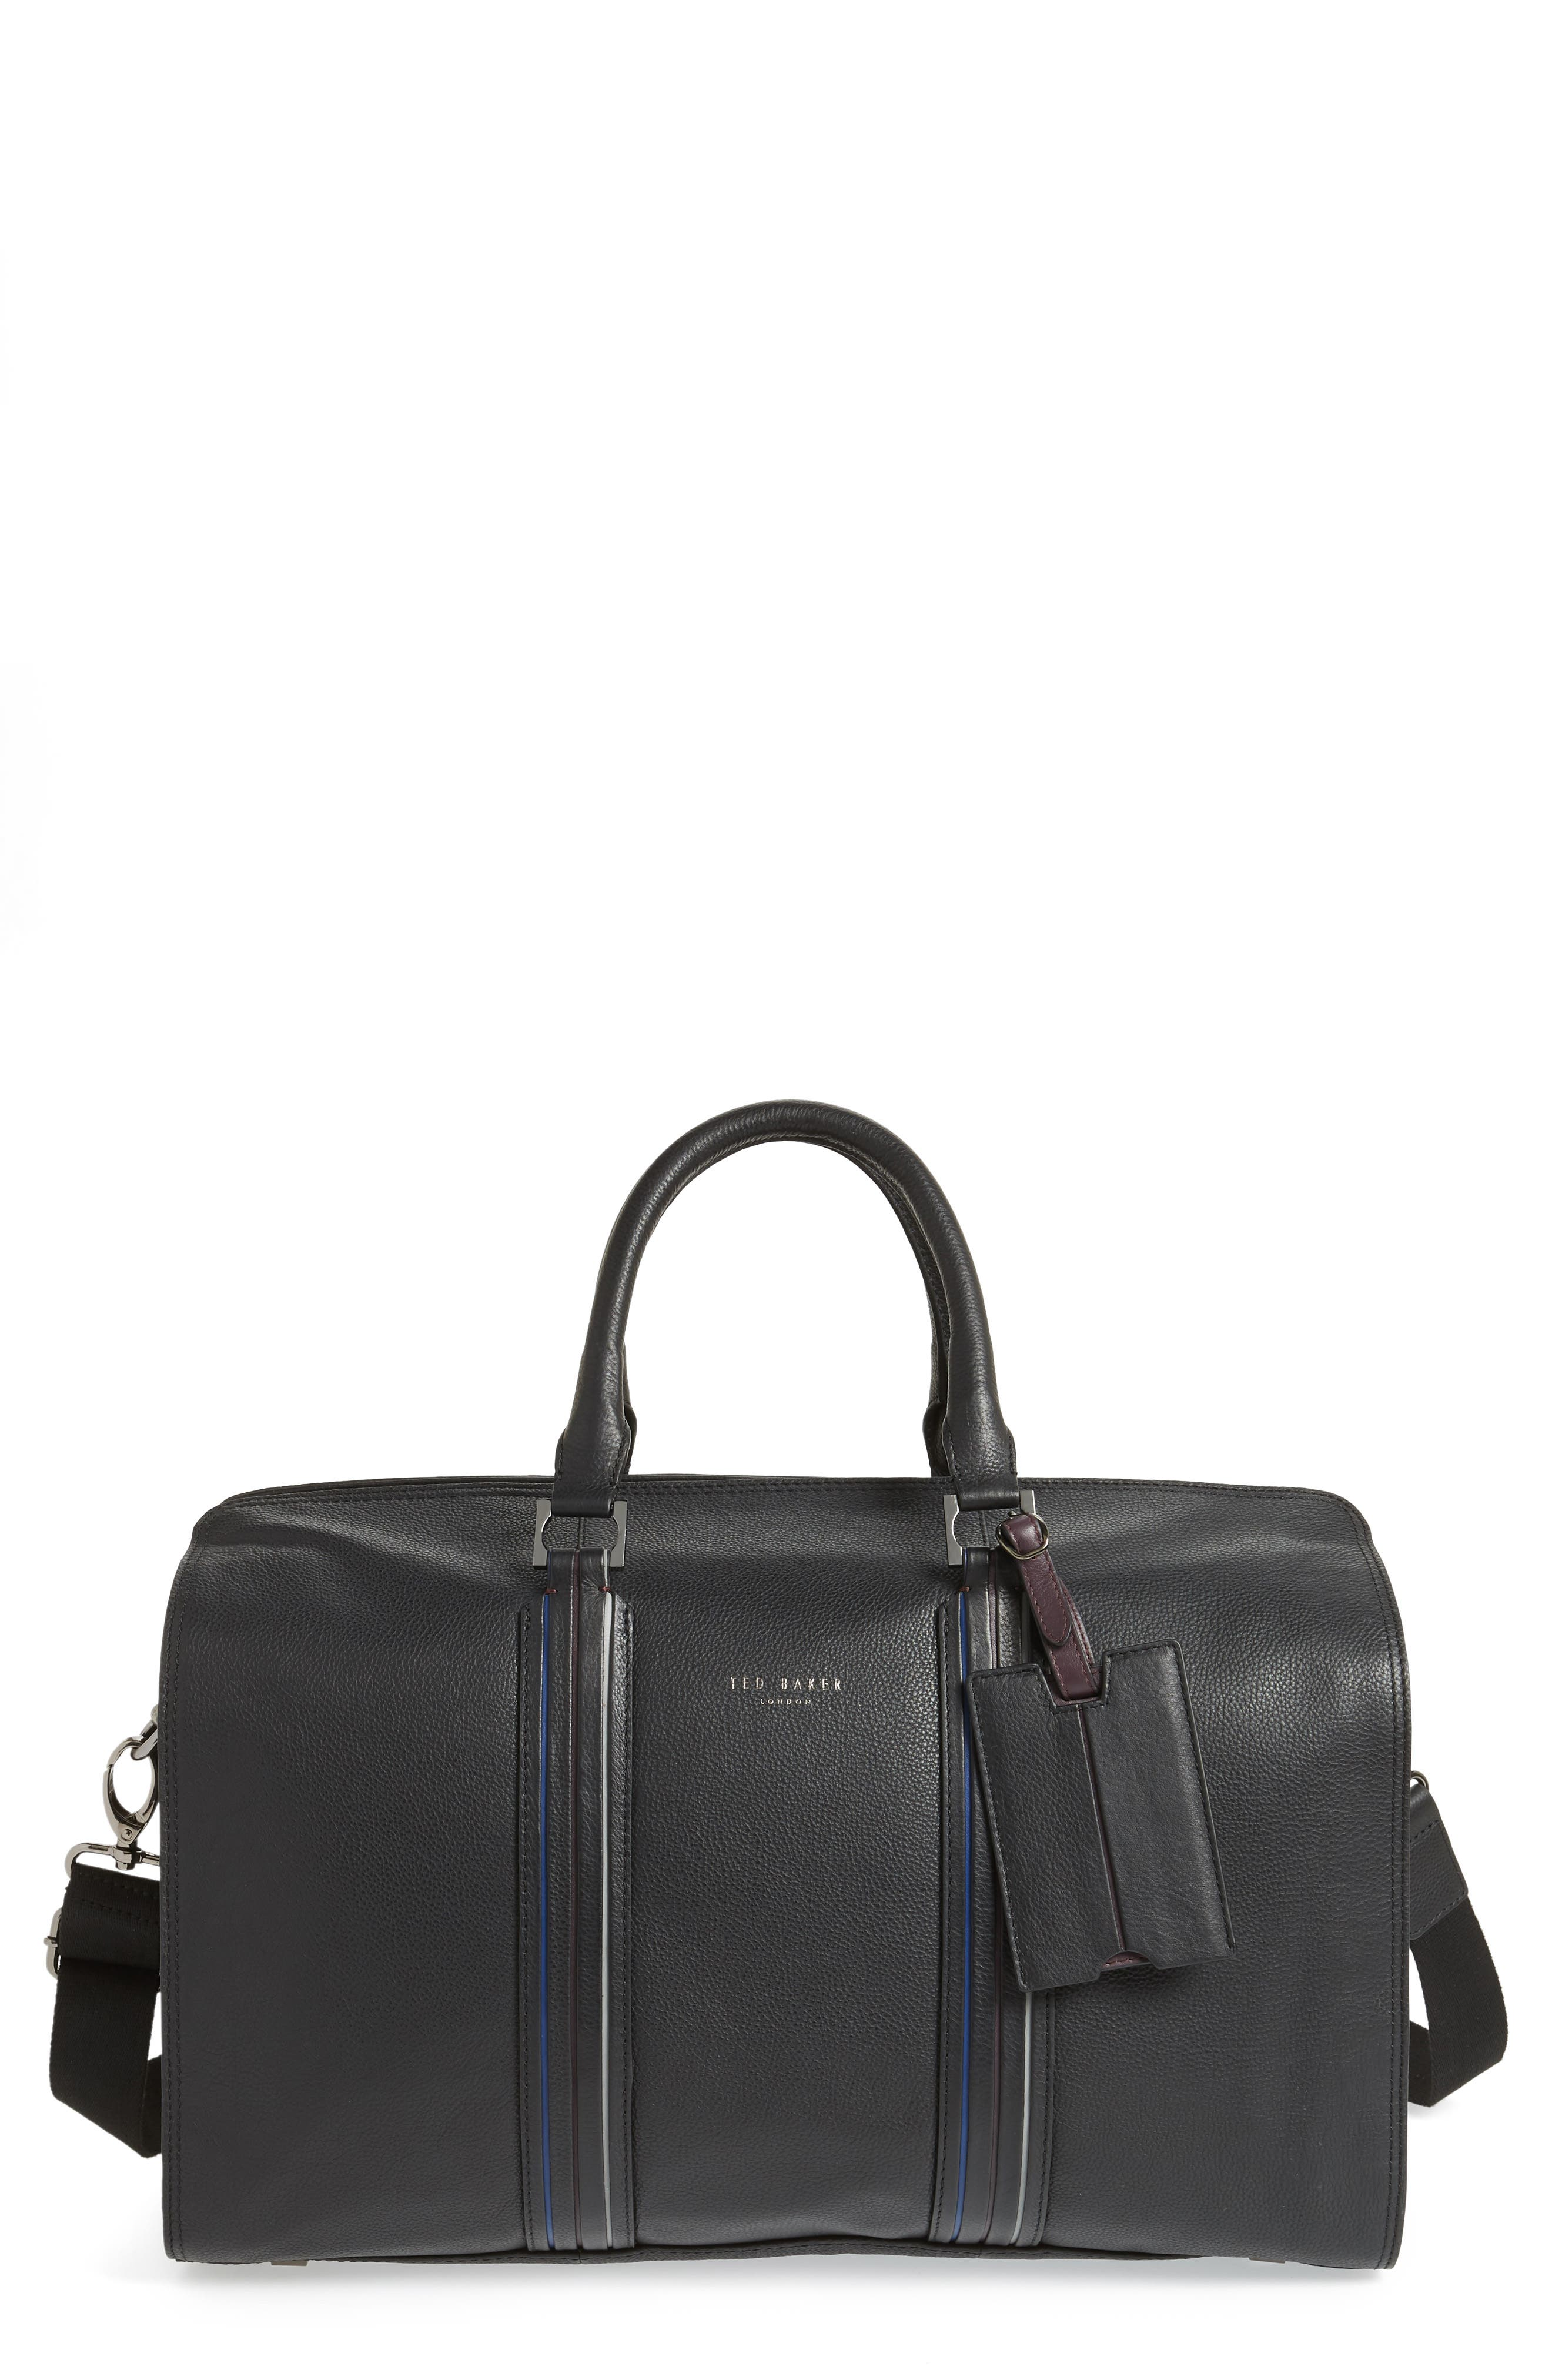 TED BAKER LONDON,                             Geeves Stripe Leather Duffel Bag,                             Main thumbnail 1, color,                             001